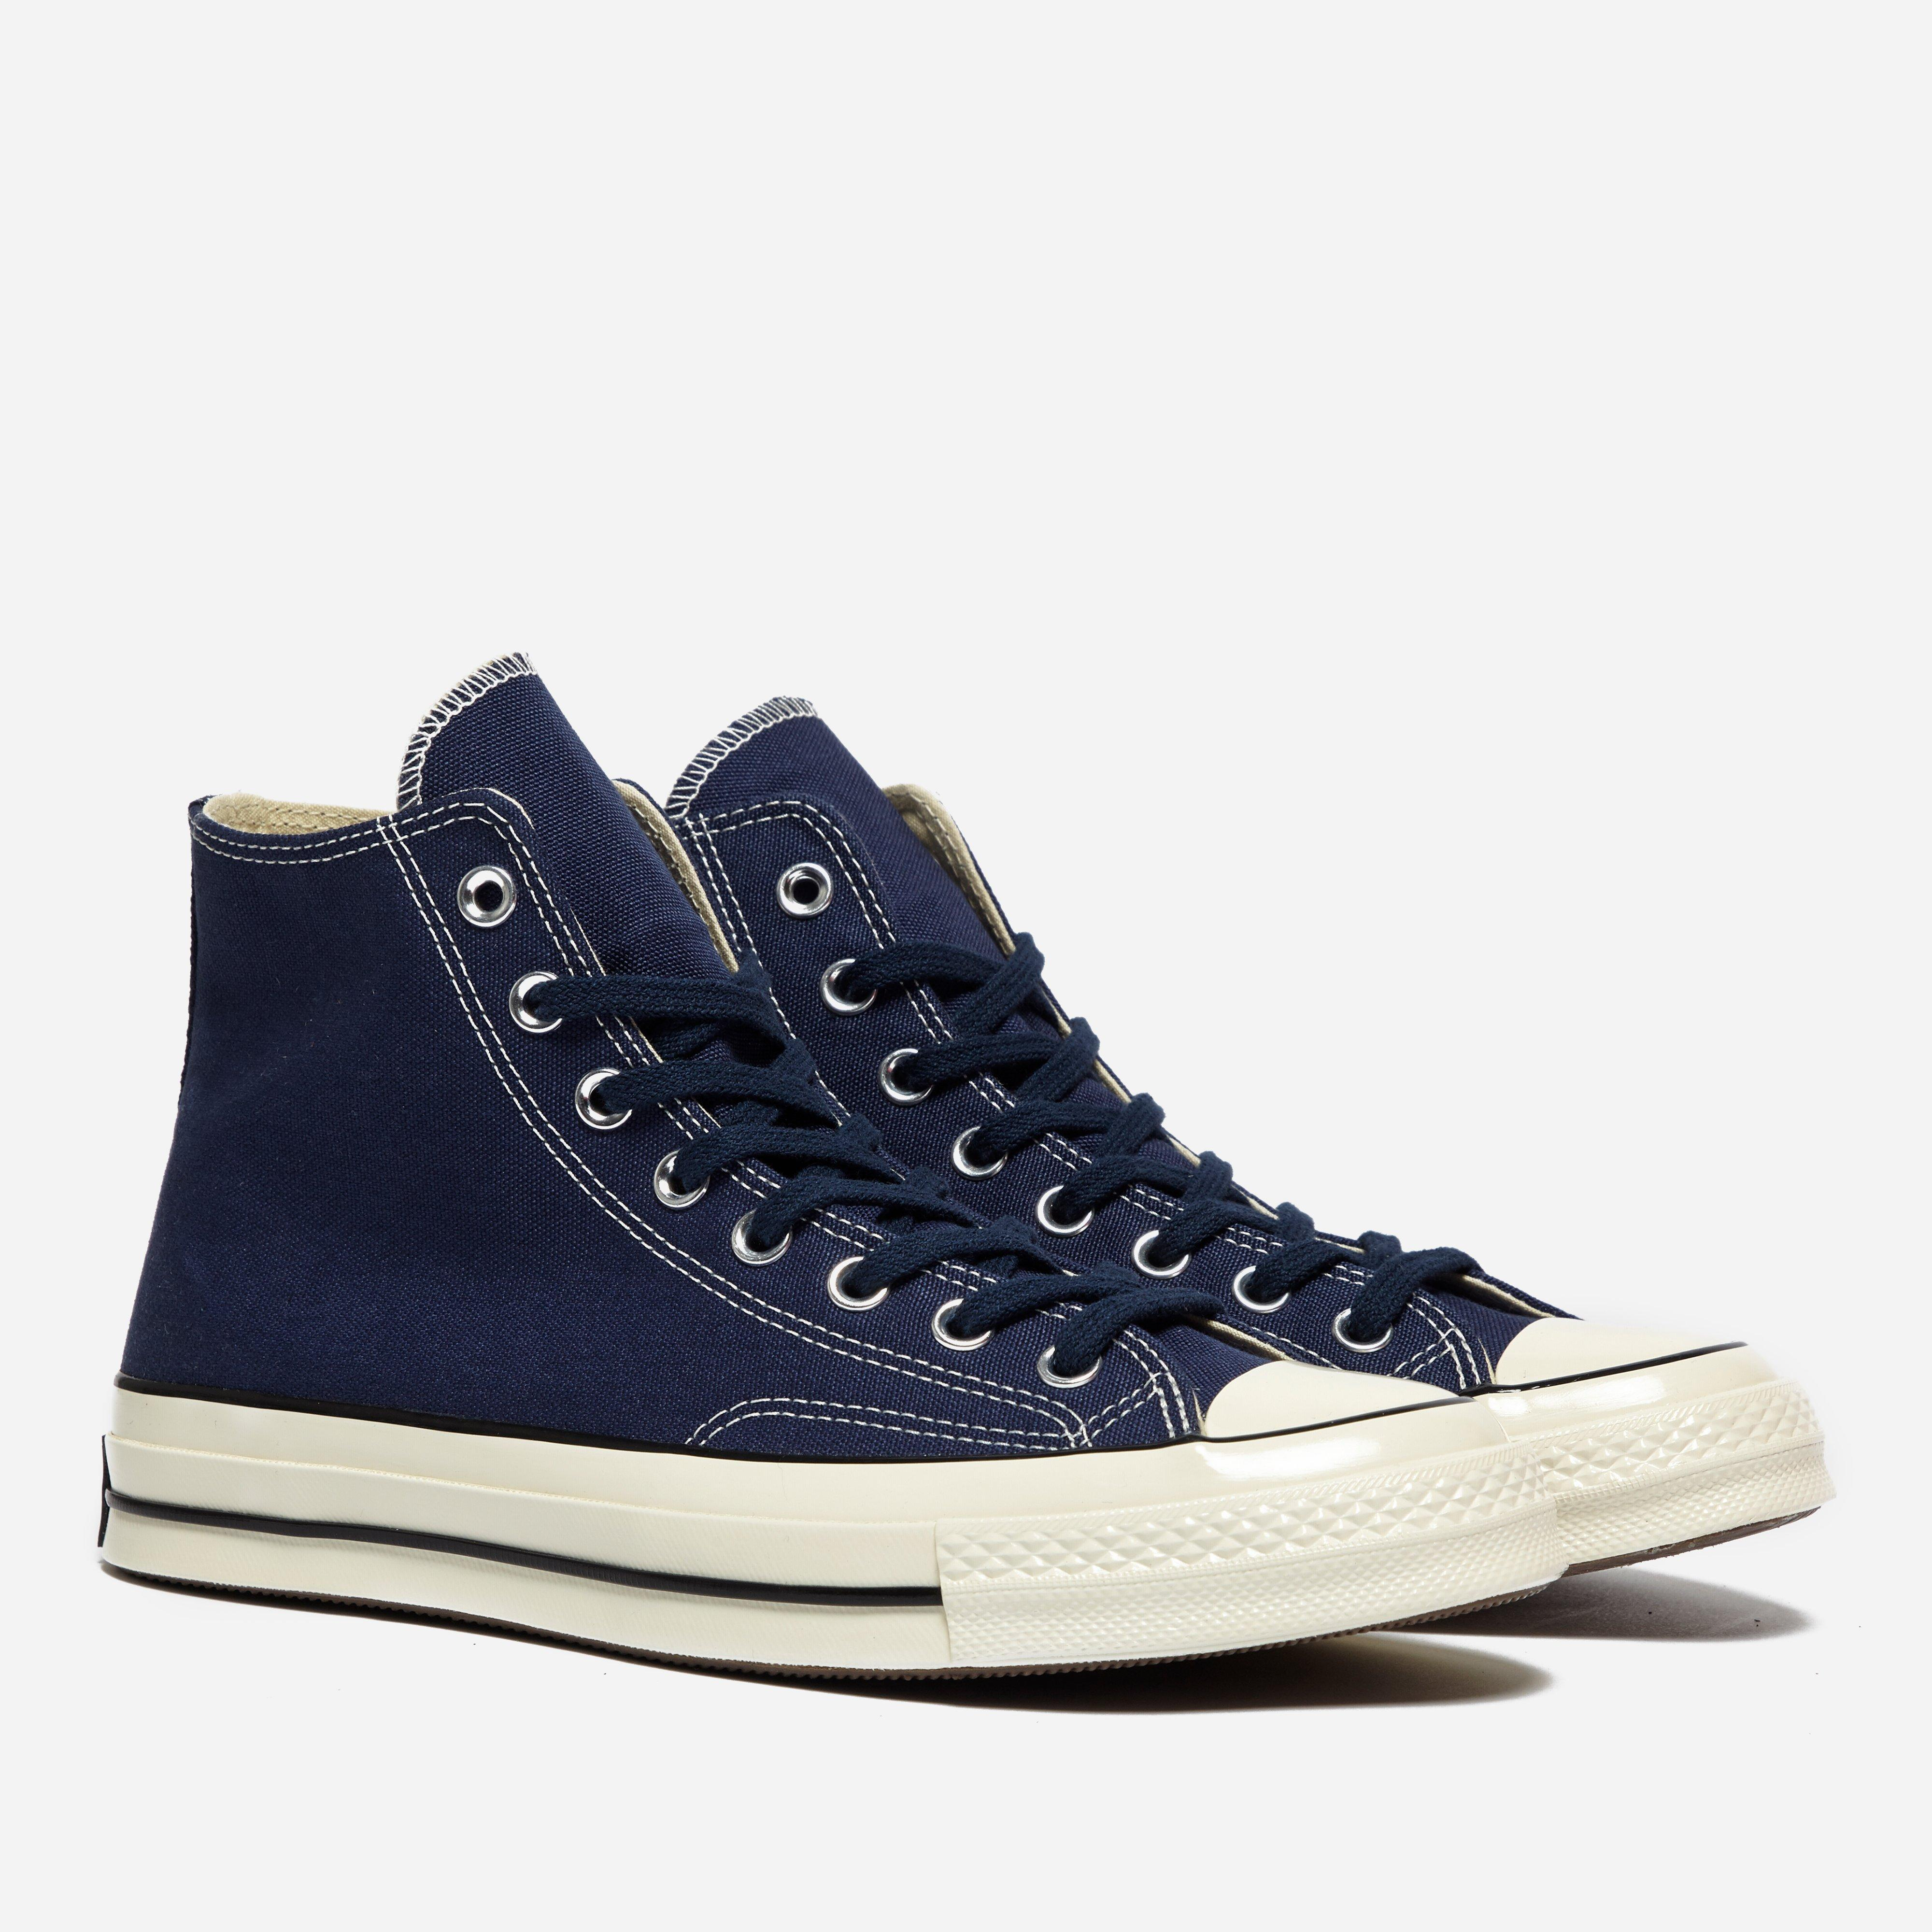 Converse Canvas Chuck Taylor All Star 1970 Hi in Navy (Blue) for Men - Lyst